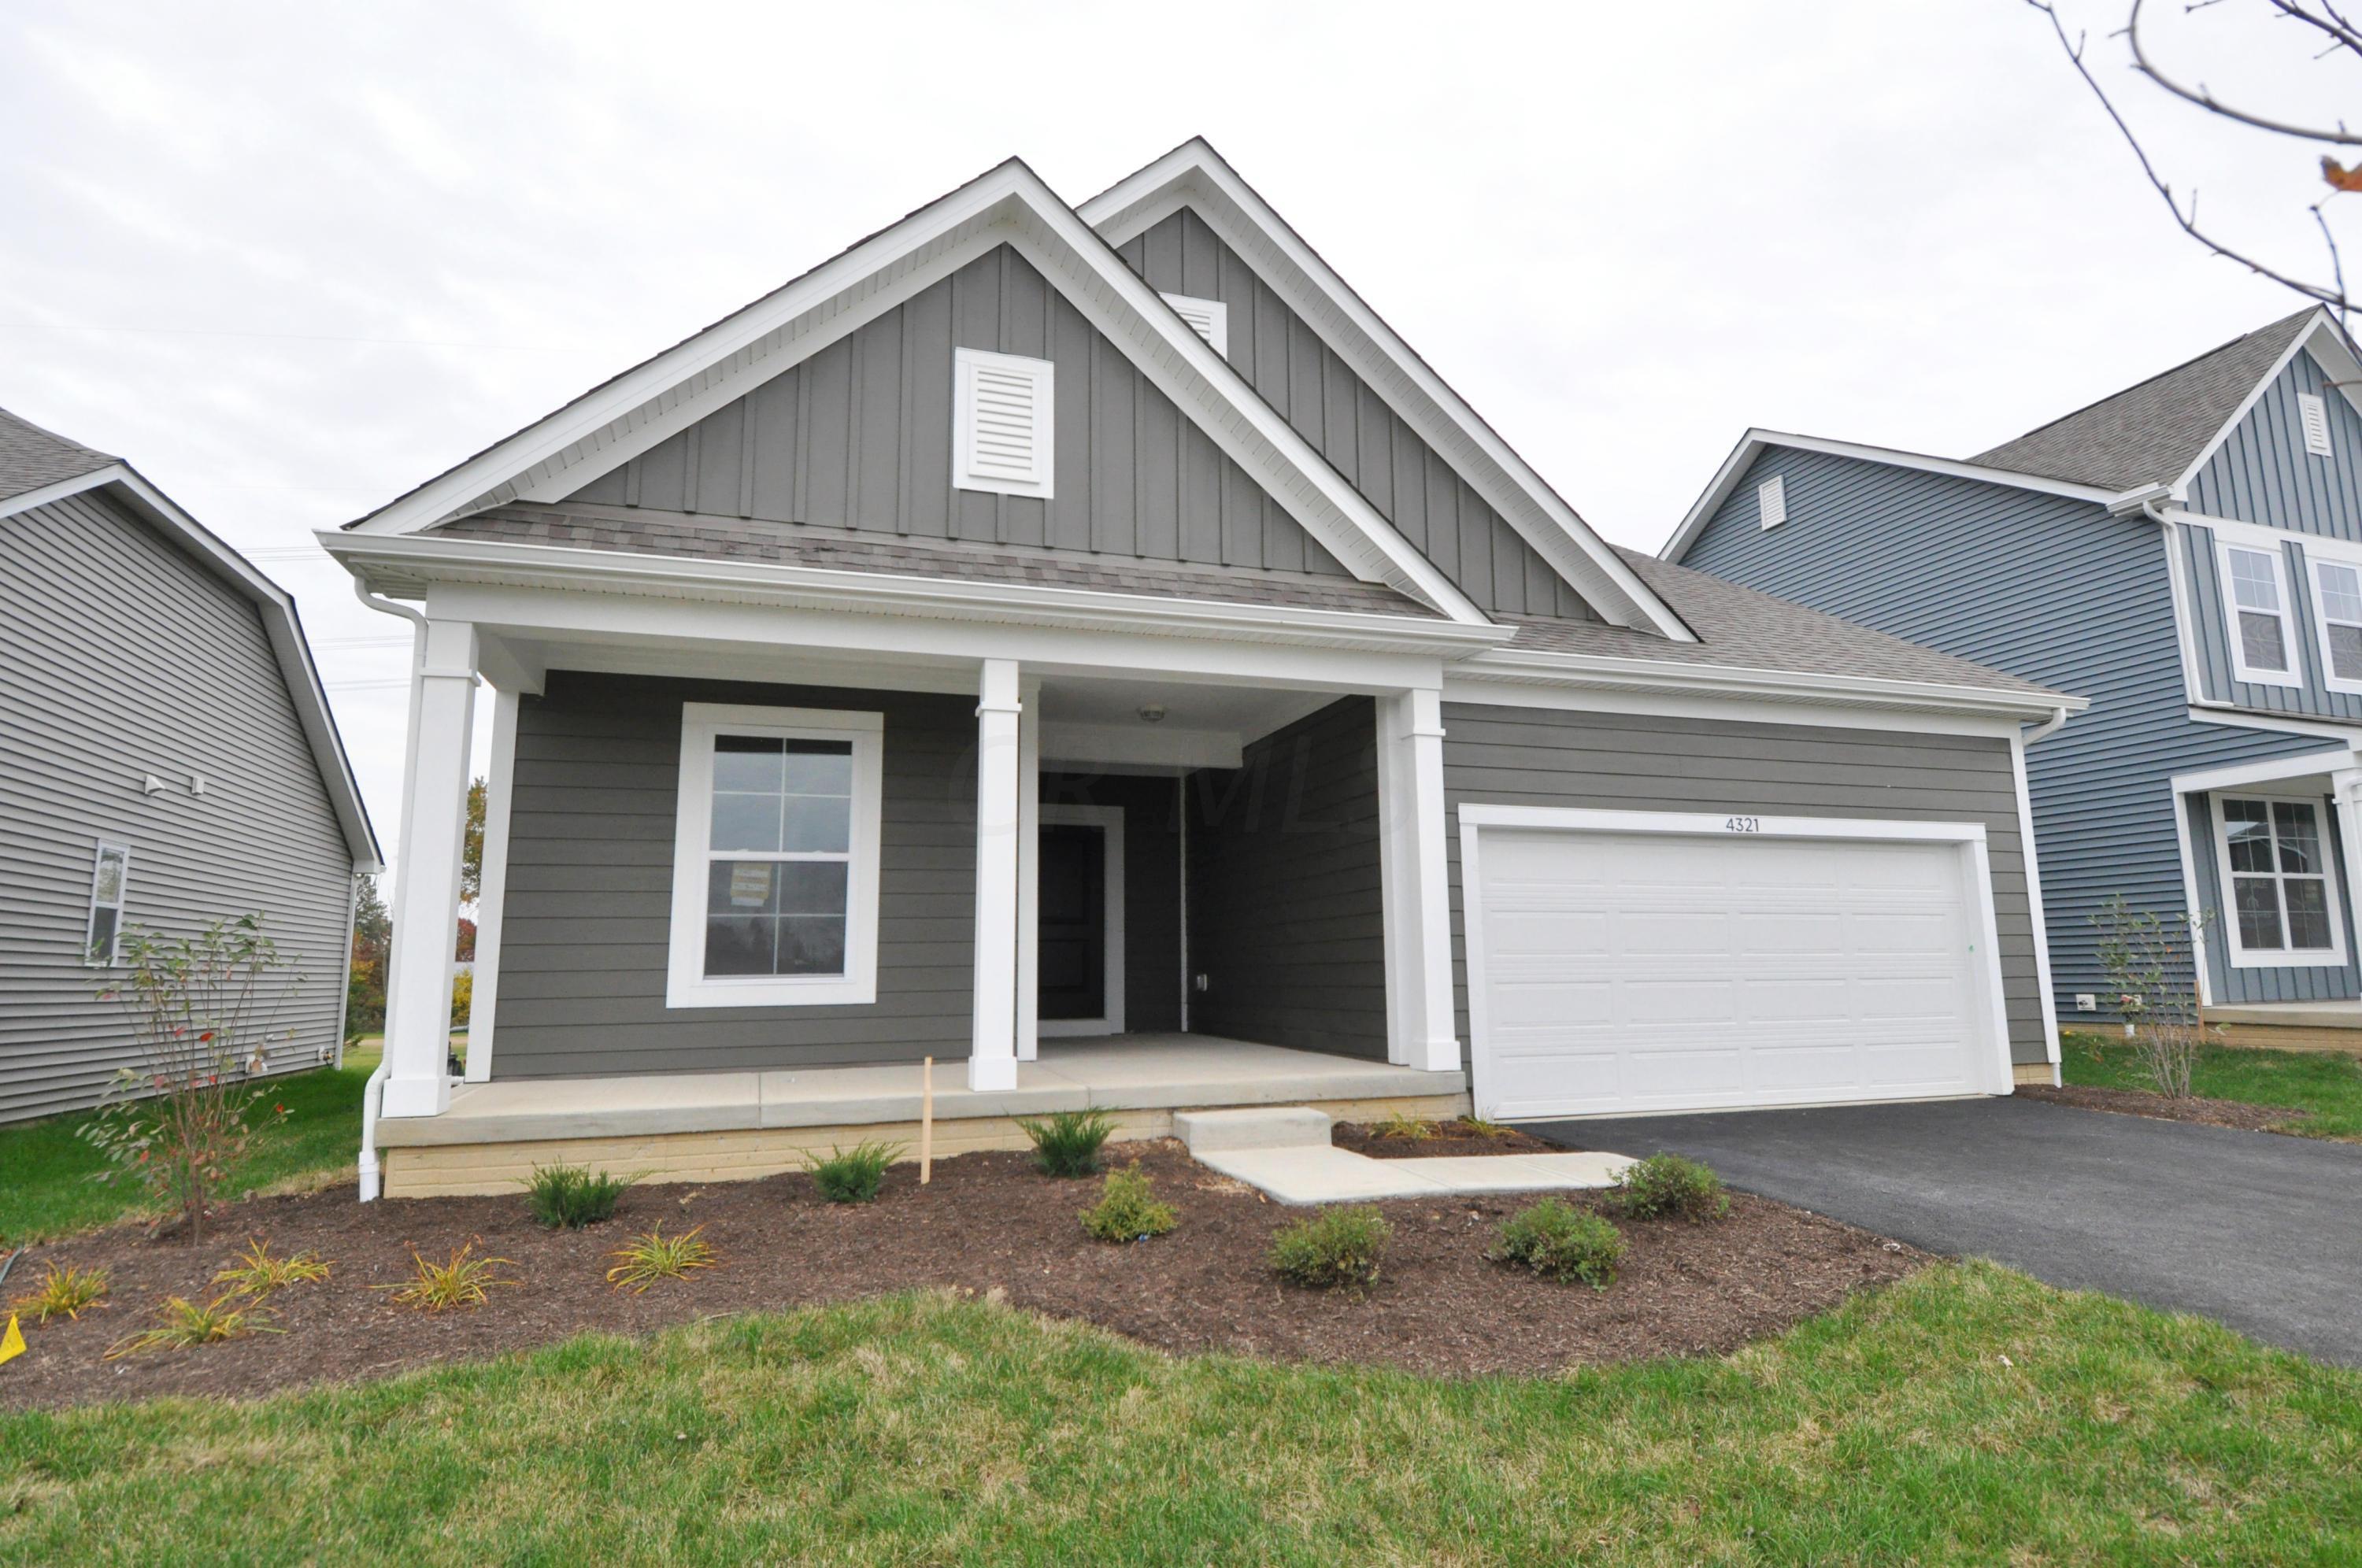 Photo of 4321 Quail Landing, Powell, OH 43065